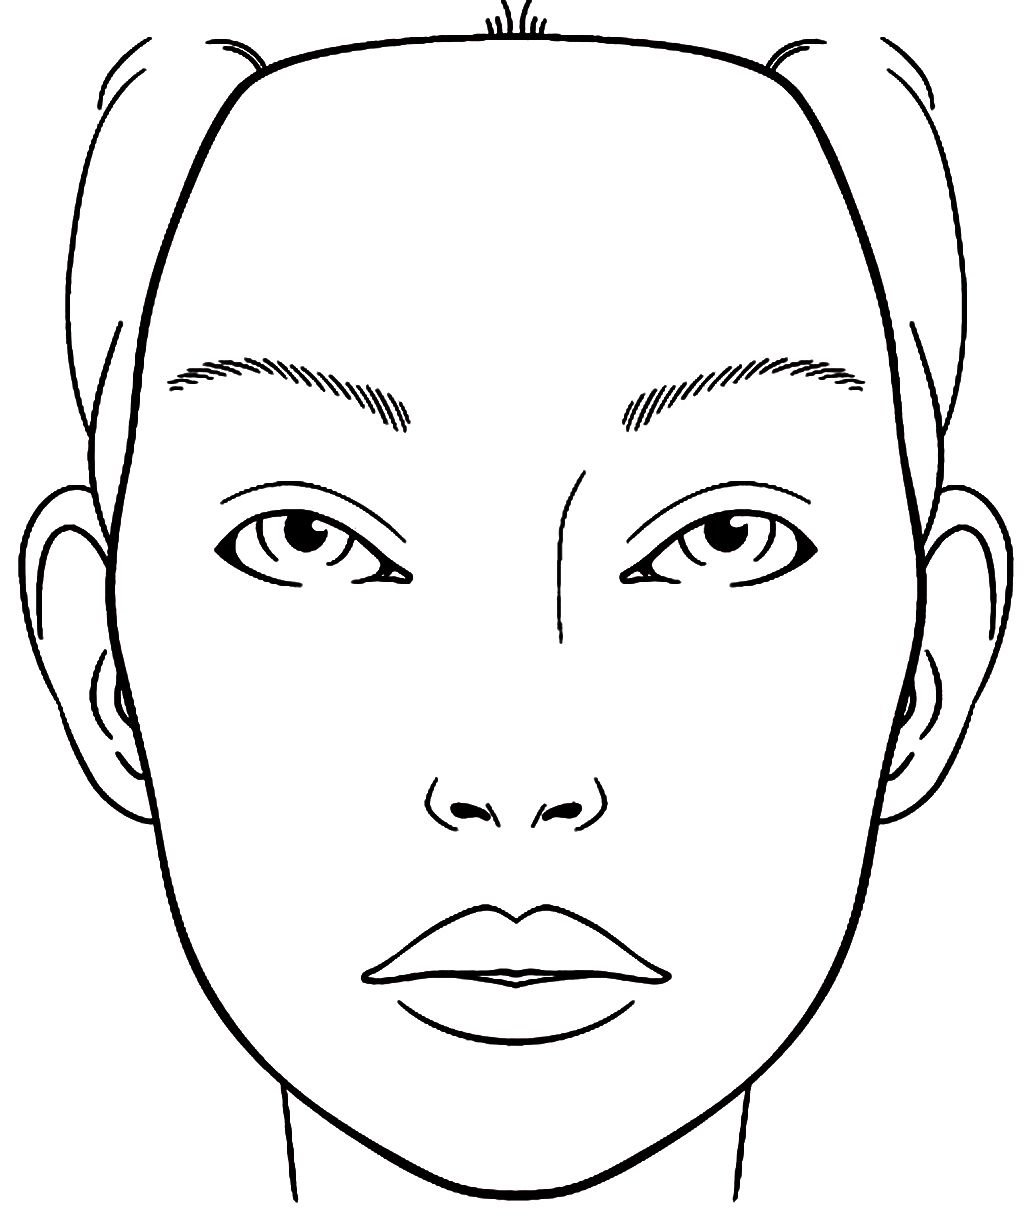 1035x1219 Blank Face Chart Sketch Coloring Page Teagans